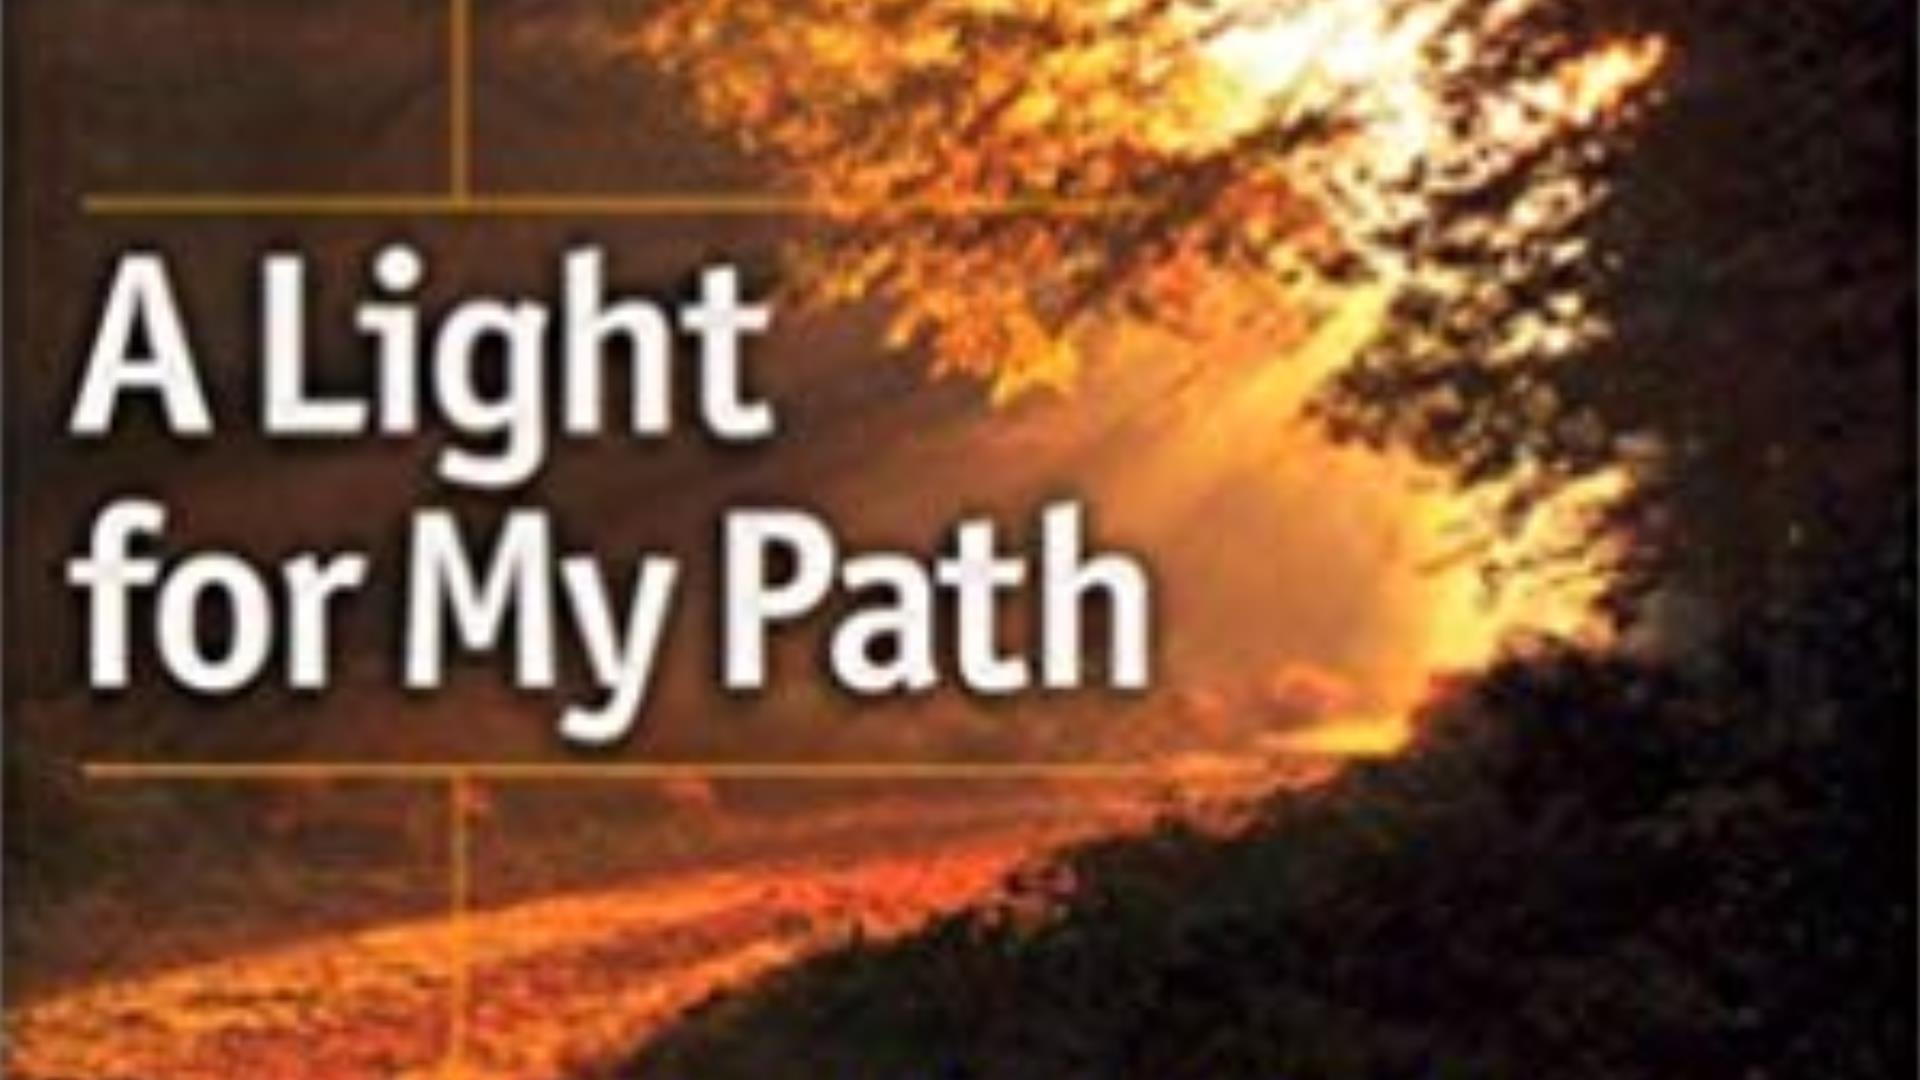 A Light To My Path